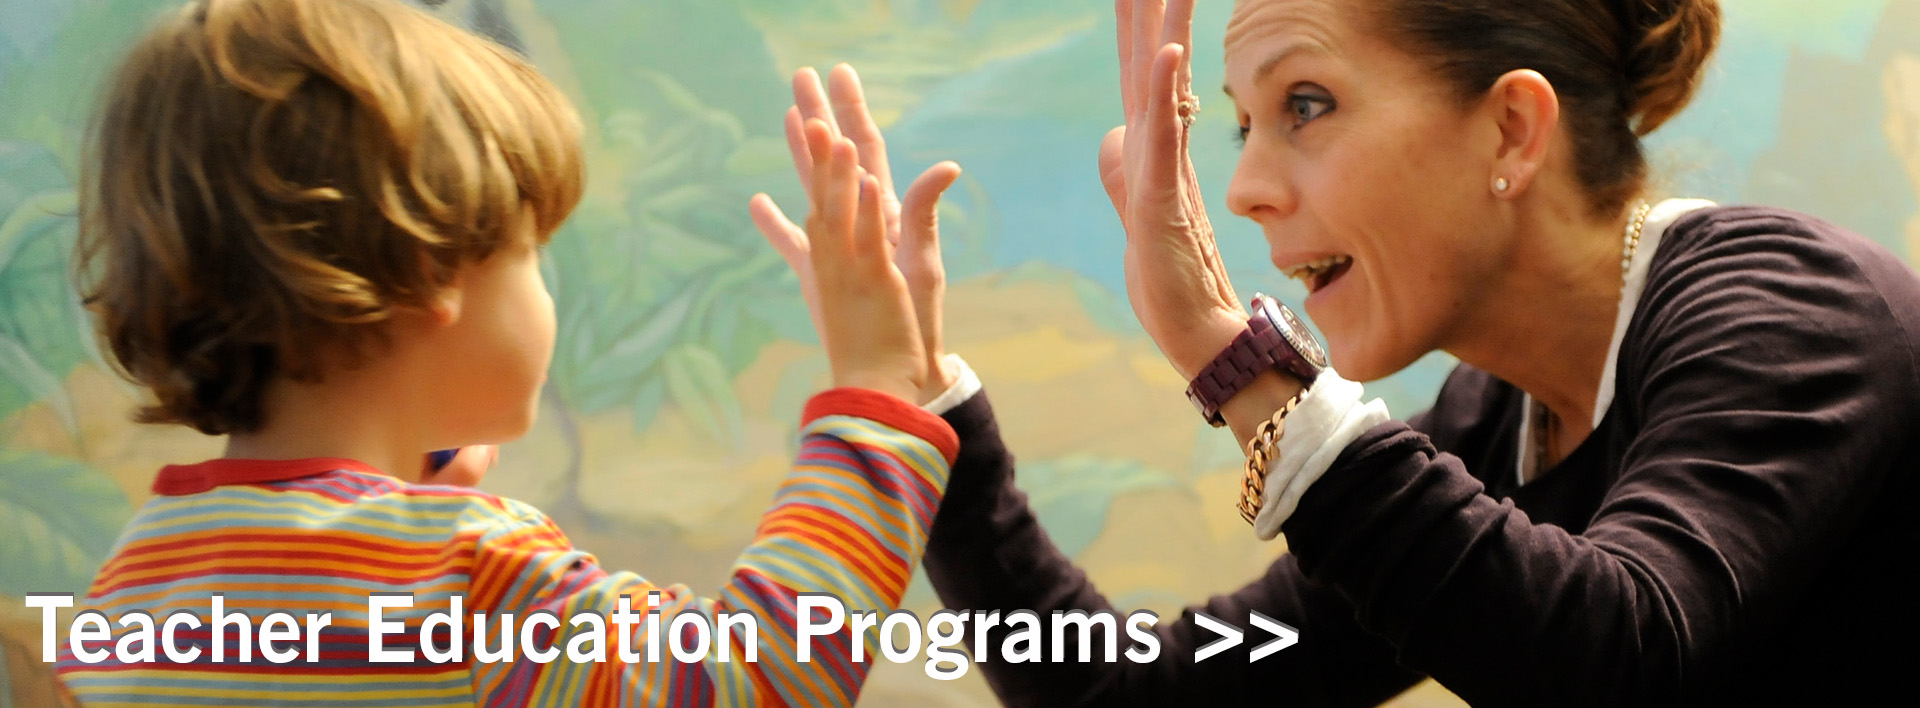 Teacher Education Programs banner